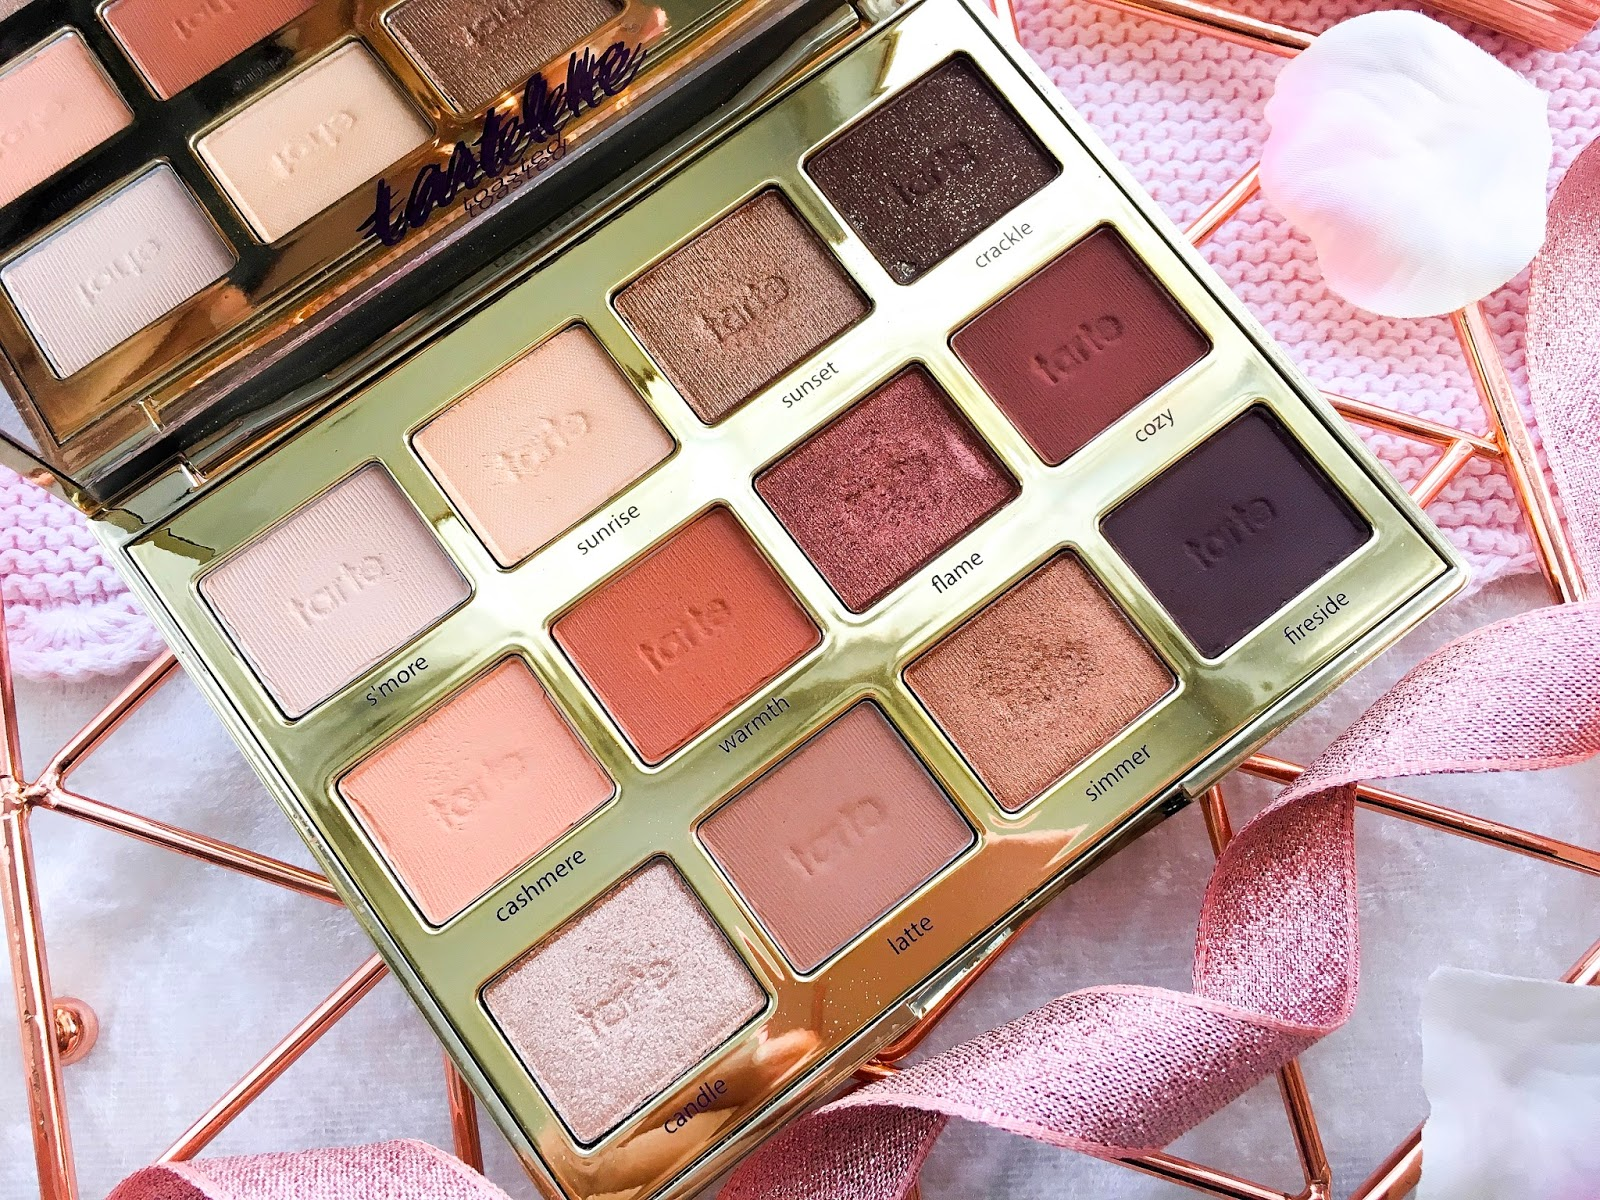 tarte toasted palette review, tarte eyeshadow palette, tarte tartelette toasted eyeshadow palette review swatches medium skin